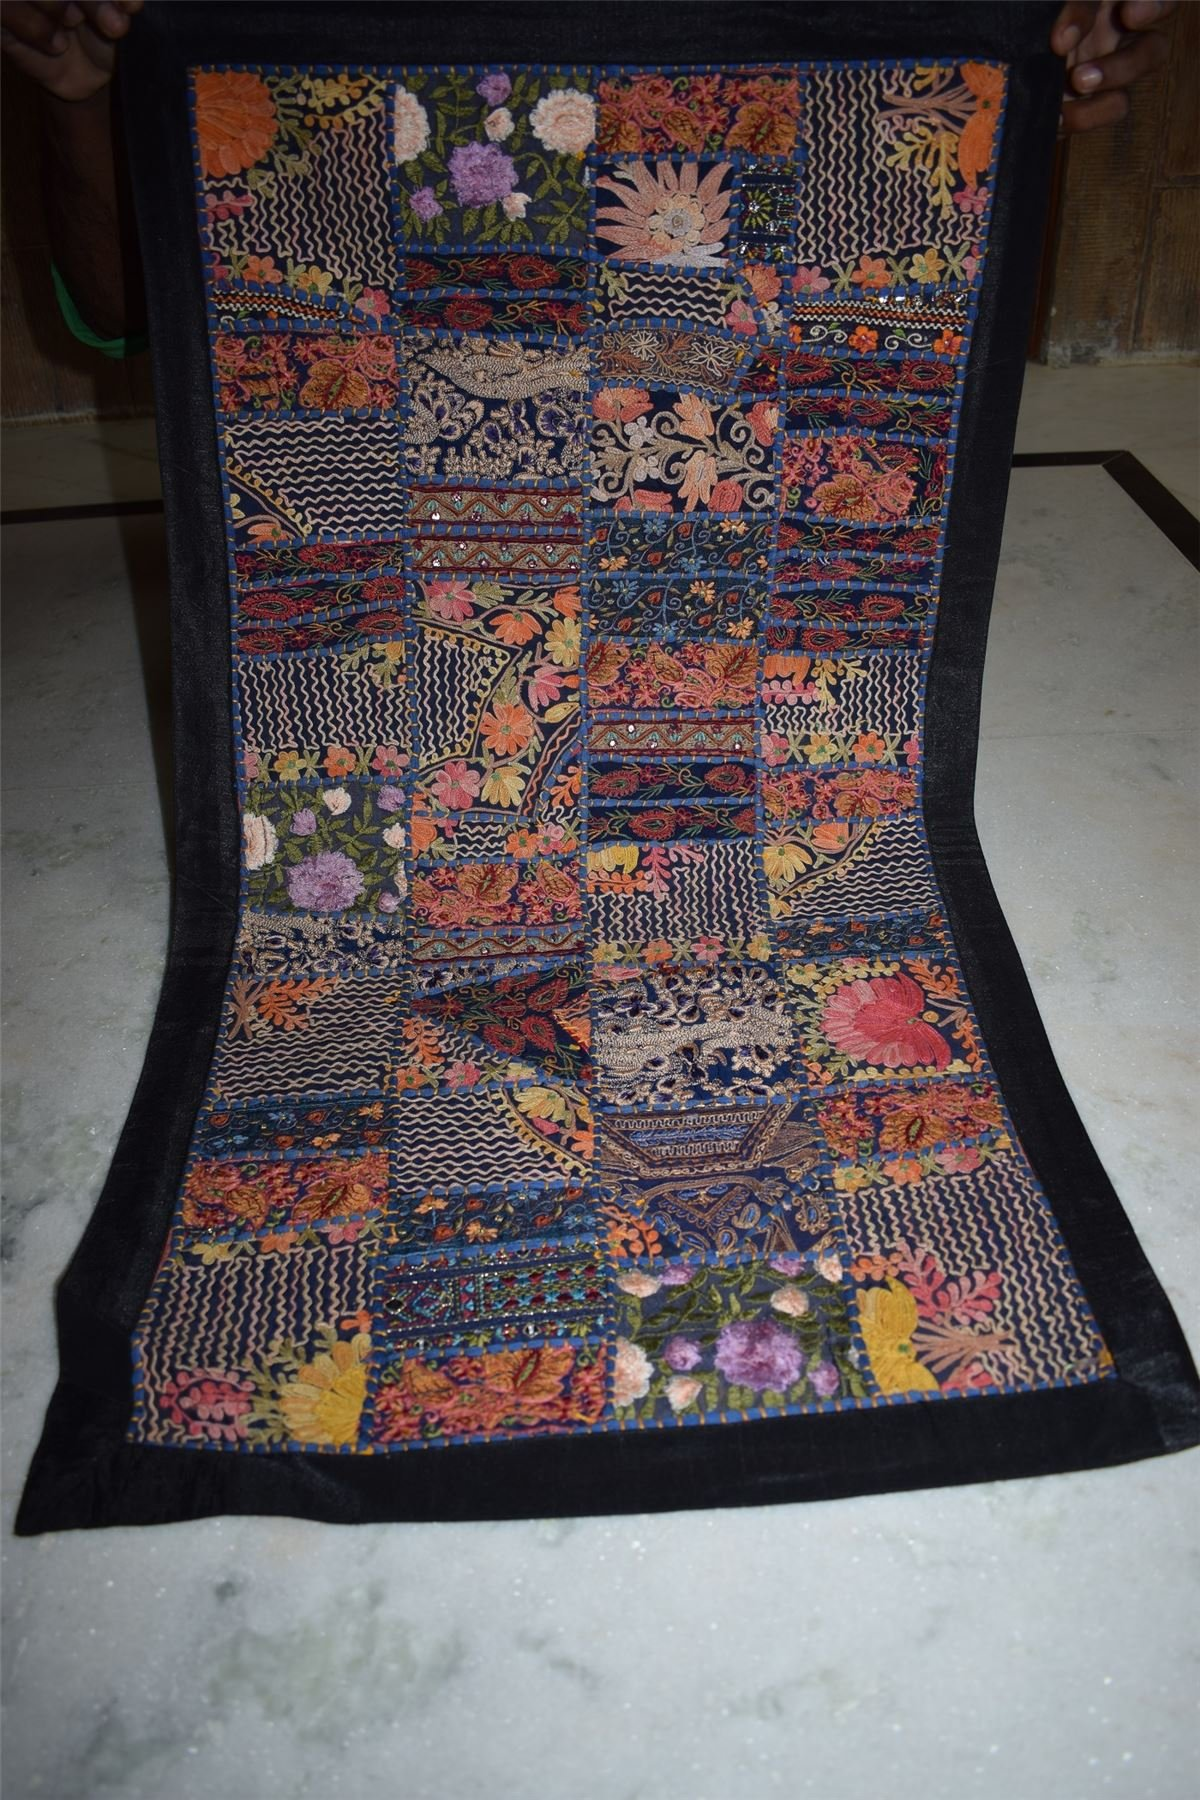 INDIA HANDMADE PATCHWORK WALL HANGING EMBROIDERED VINTAGE TAPESTRY 85